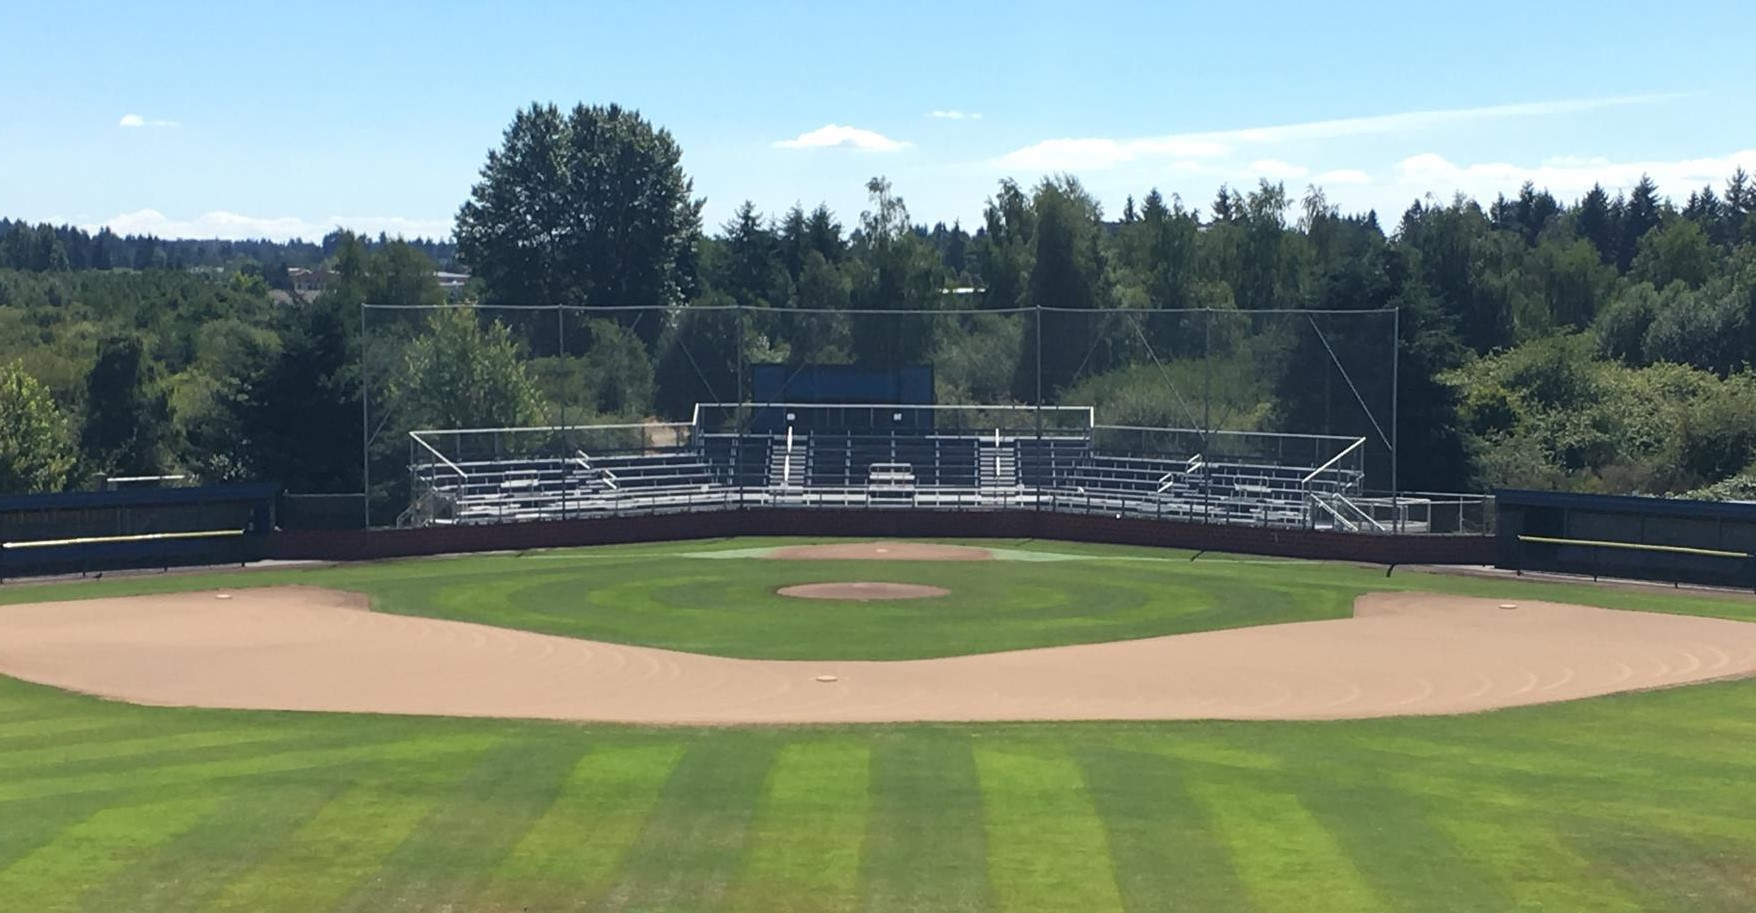 Tacoma community college titans baseball field bleachers view full image malvernweather Image collections